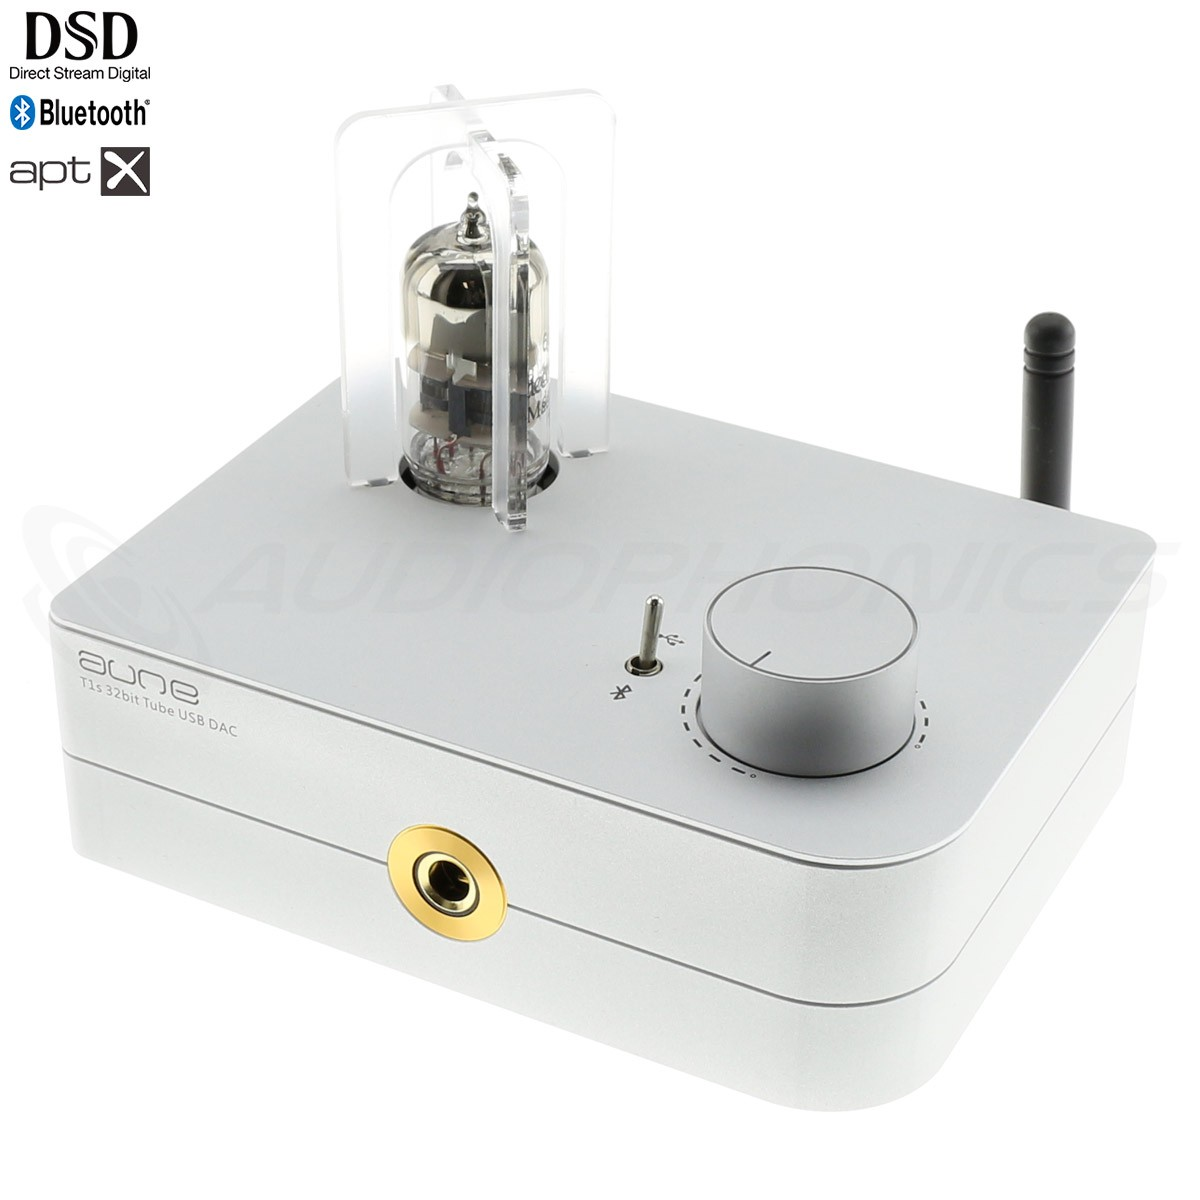 AUNE T1S 4TH GEN Tube Headphone Amplifier DAC ES9038Q2M Bluetooth aptX HD 32bit 768kHz DSD512 Silver